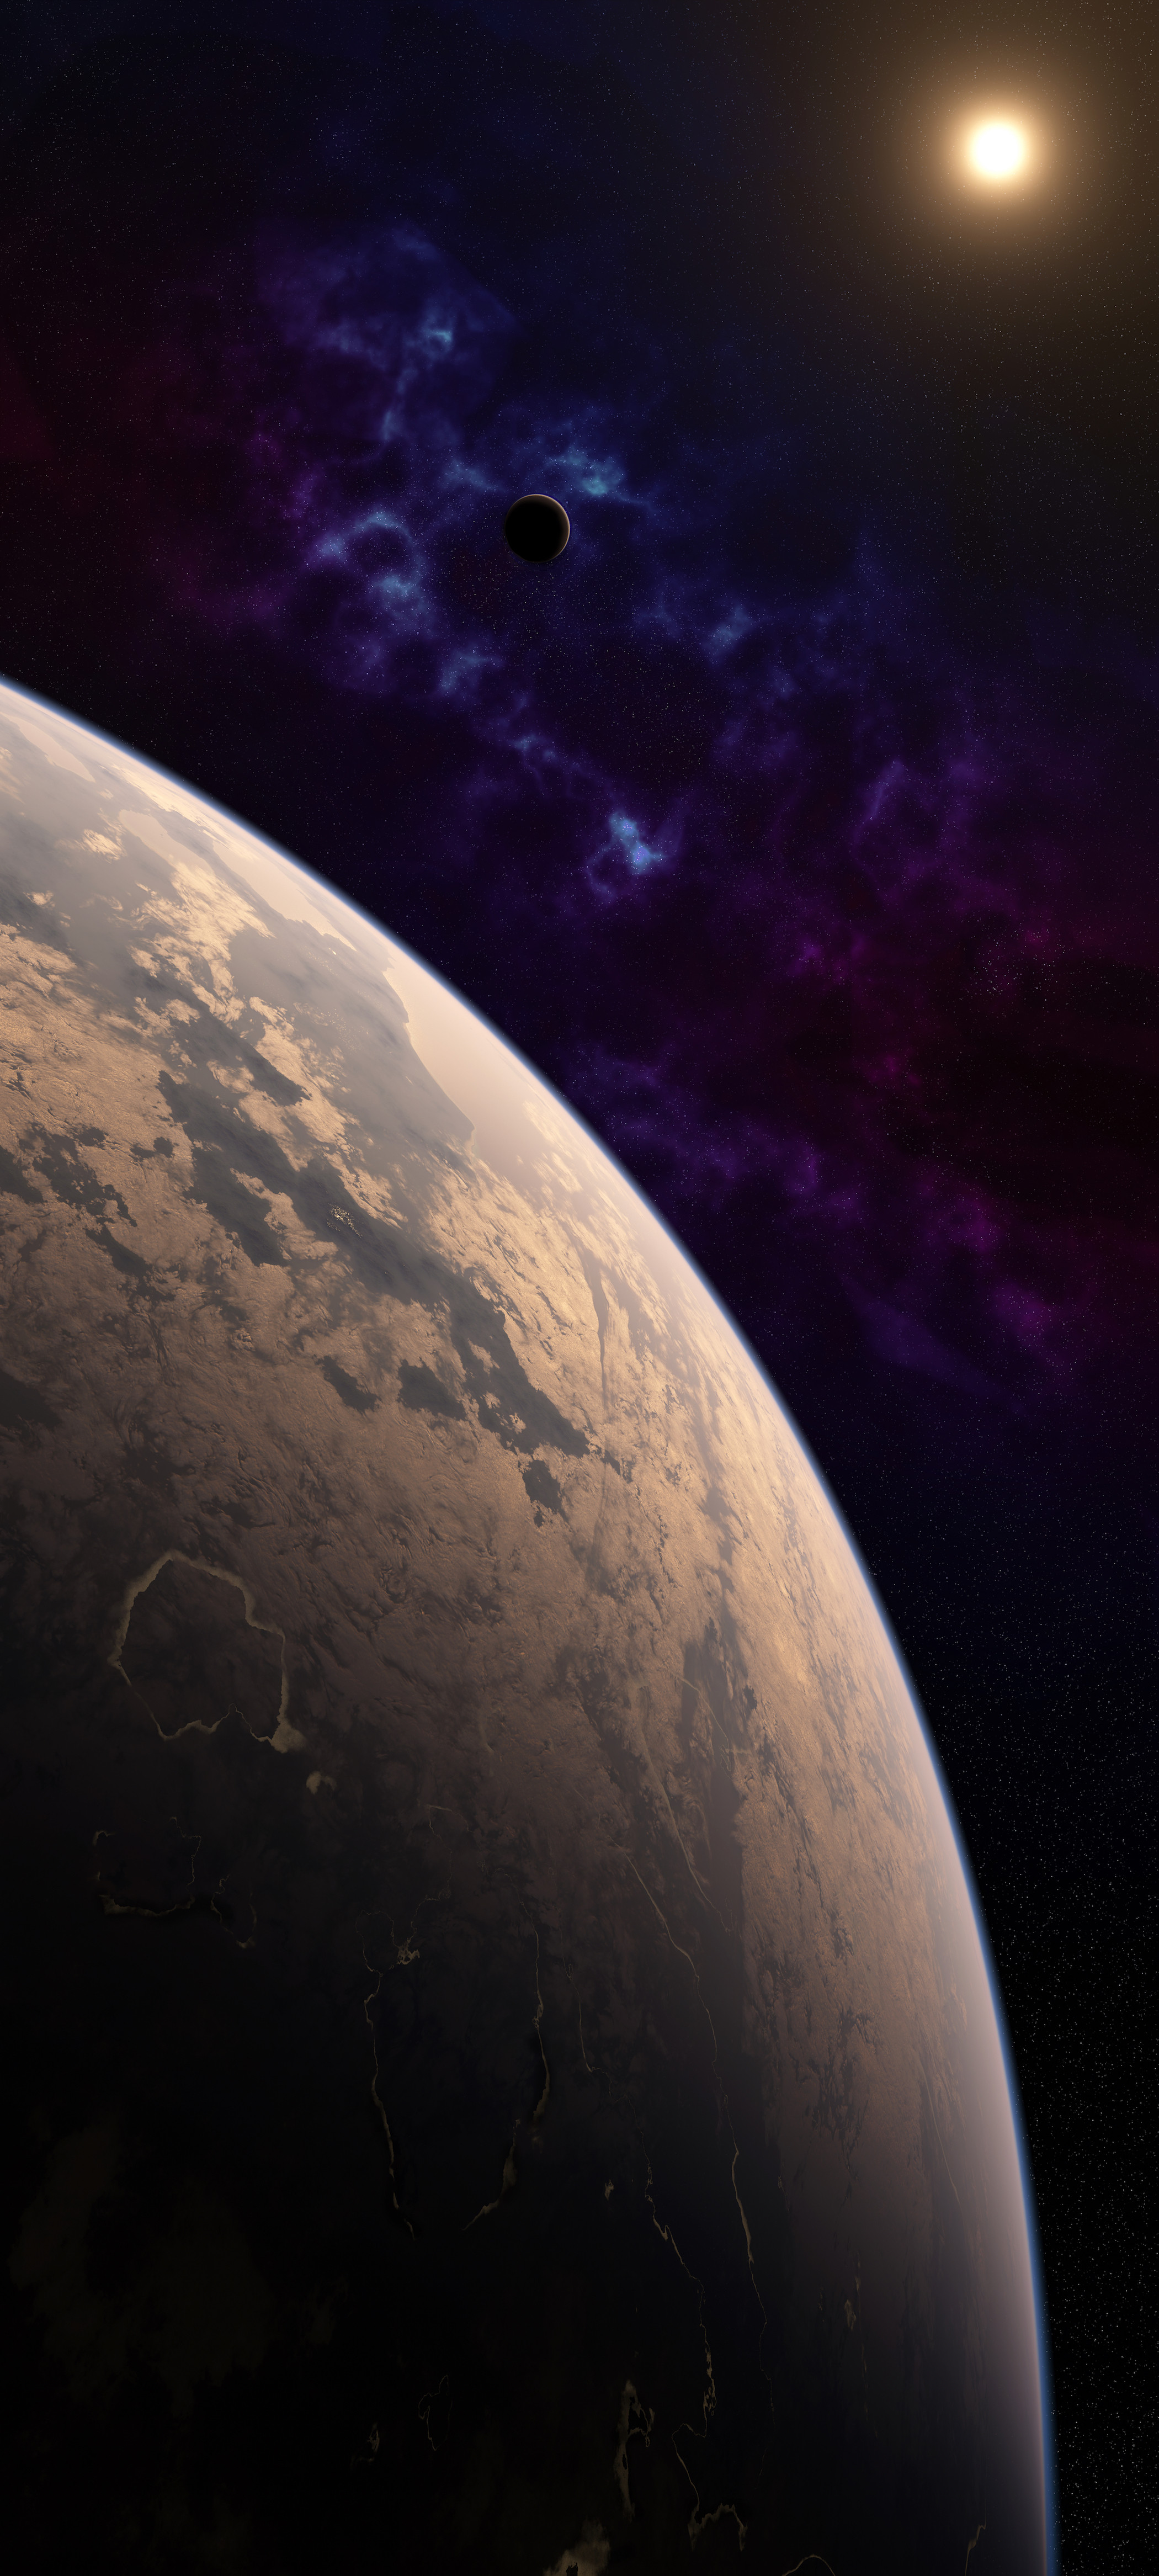 A habitable super-earth orbits an M-star in the midst of an old nebula.